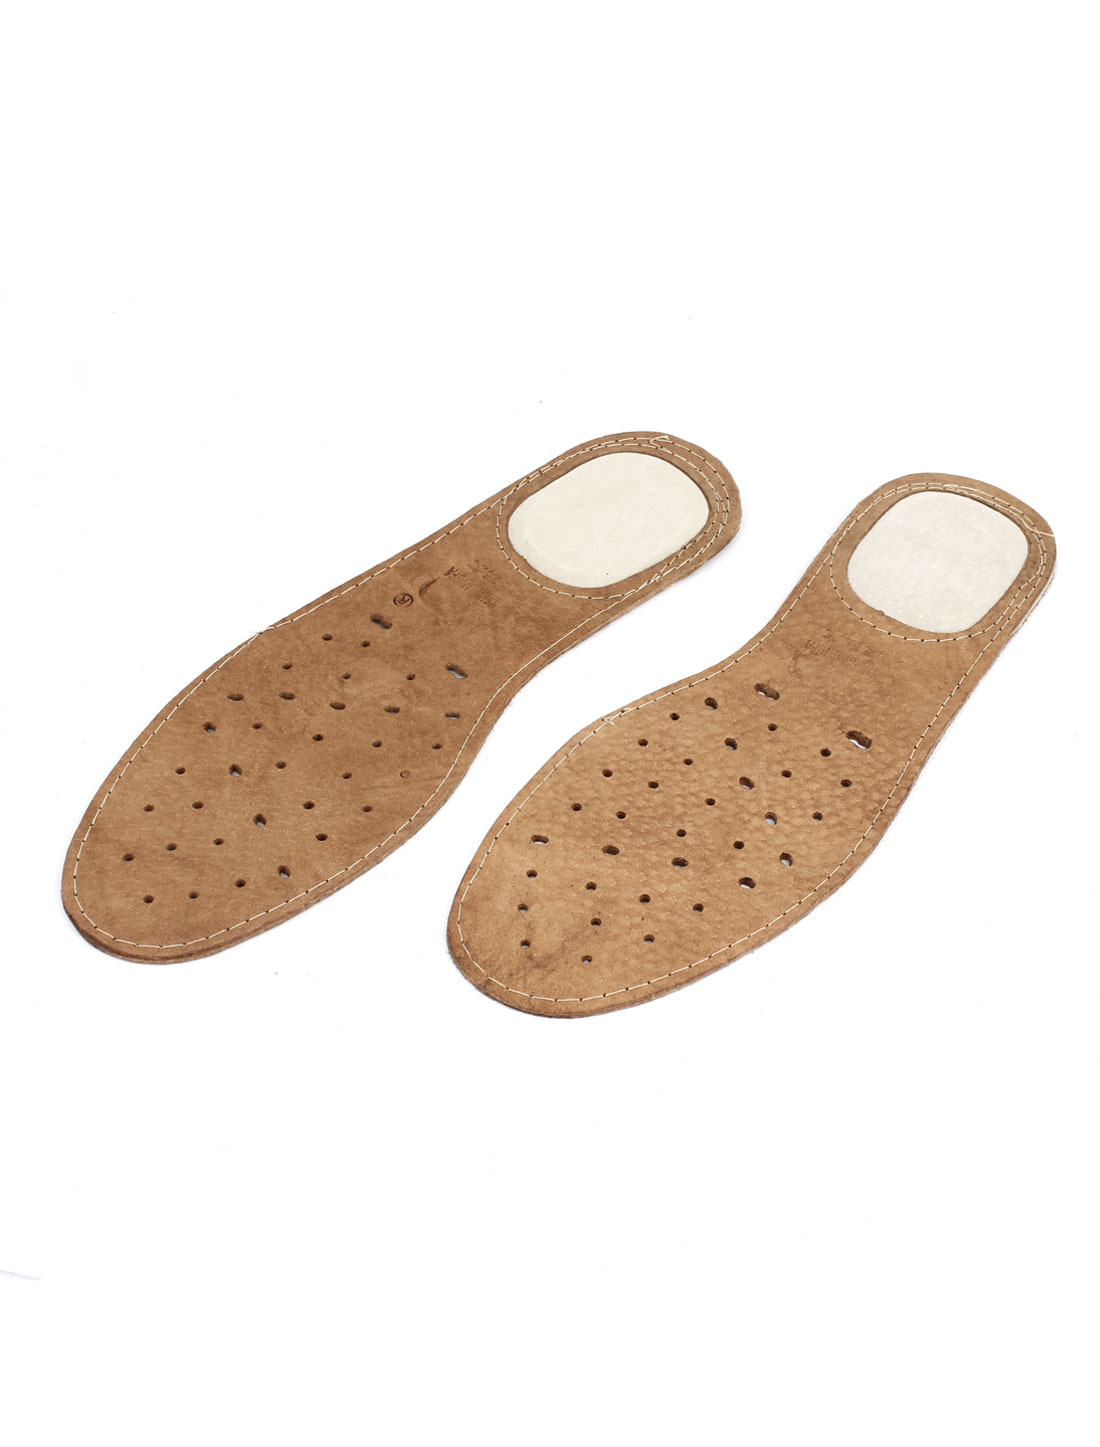 Pair Brown Faux Leather Hole Style Insoles Shoe Pads US 9.5 EU 43 for Man